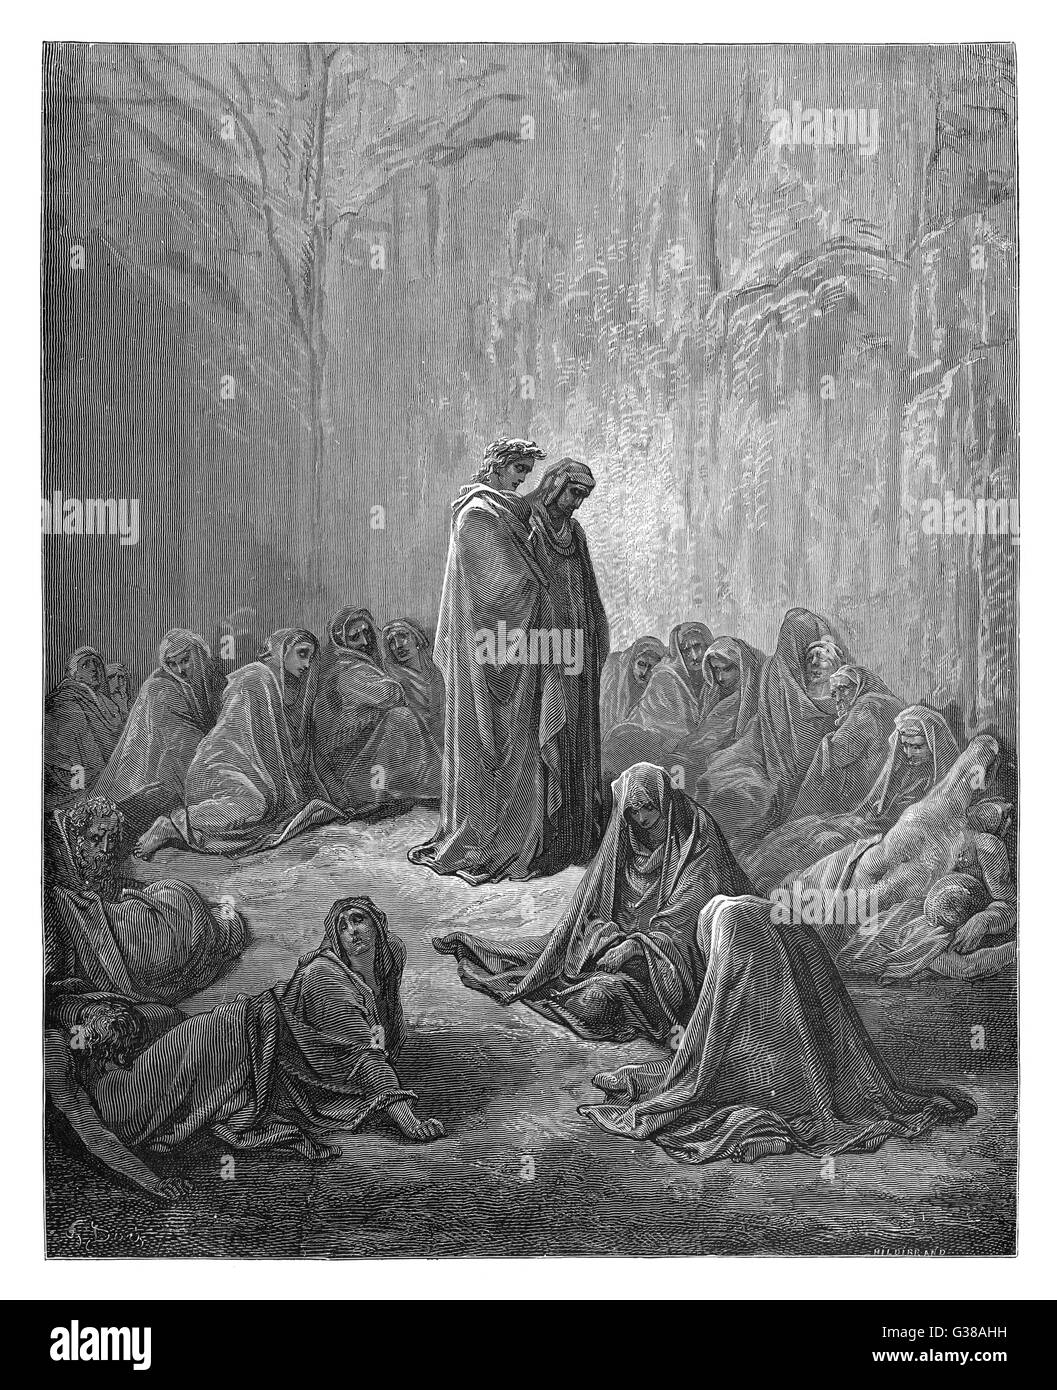 Dante and Virgil walk among  female souls in Purgatorio.        Date: First published: 1307-21? - Stock Image